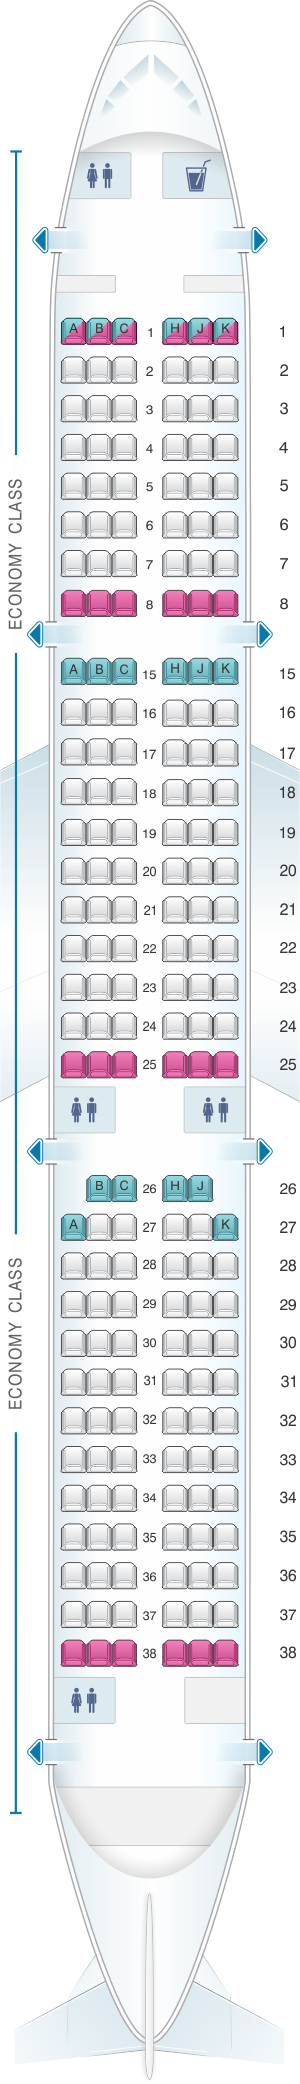 Seat map for Air Transat Airbus A321 US and South